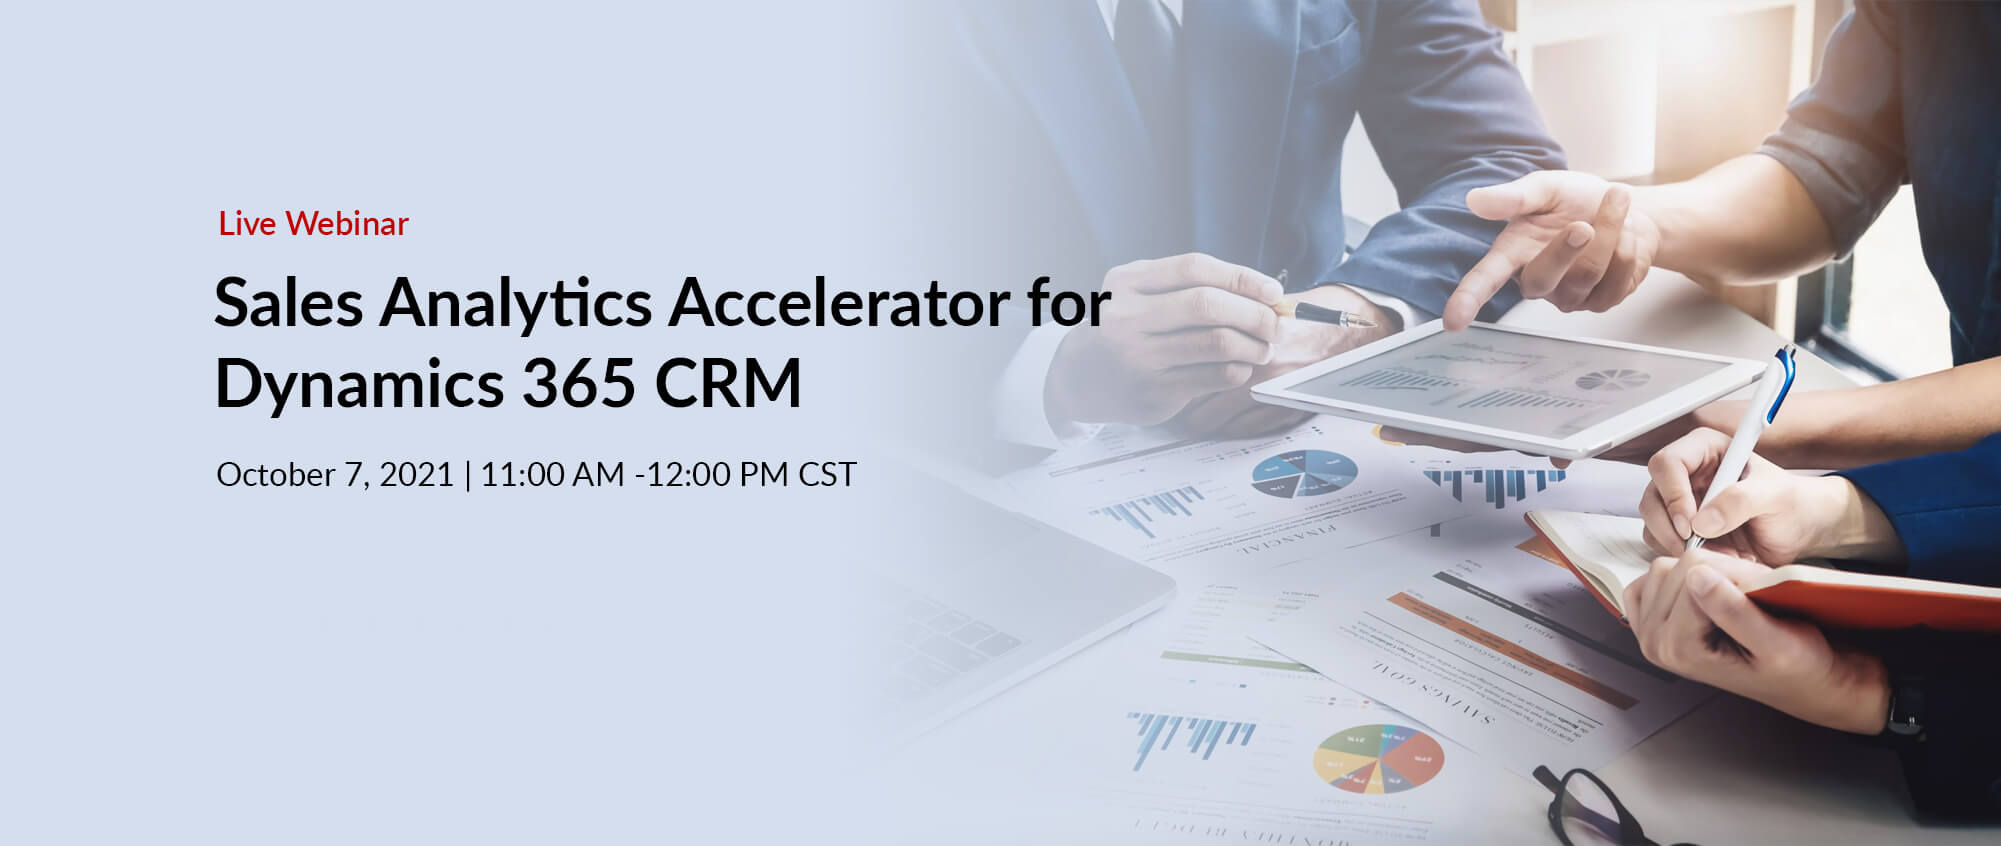 Sales Analytics Accelerator for Dynamics 365 CRM